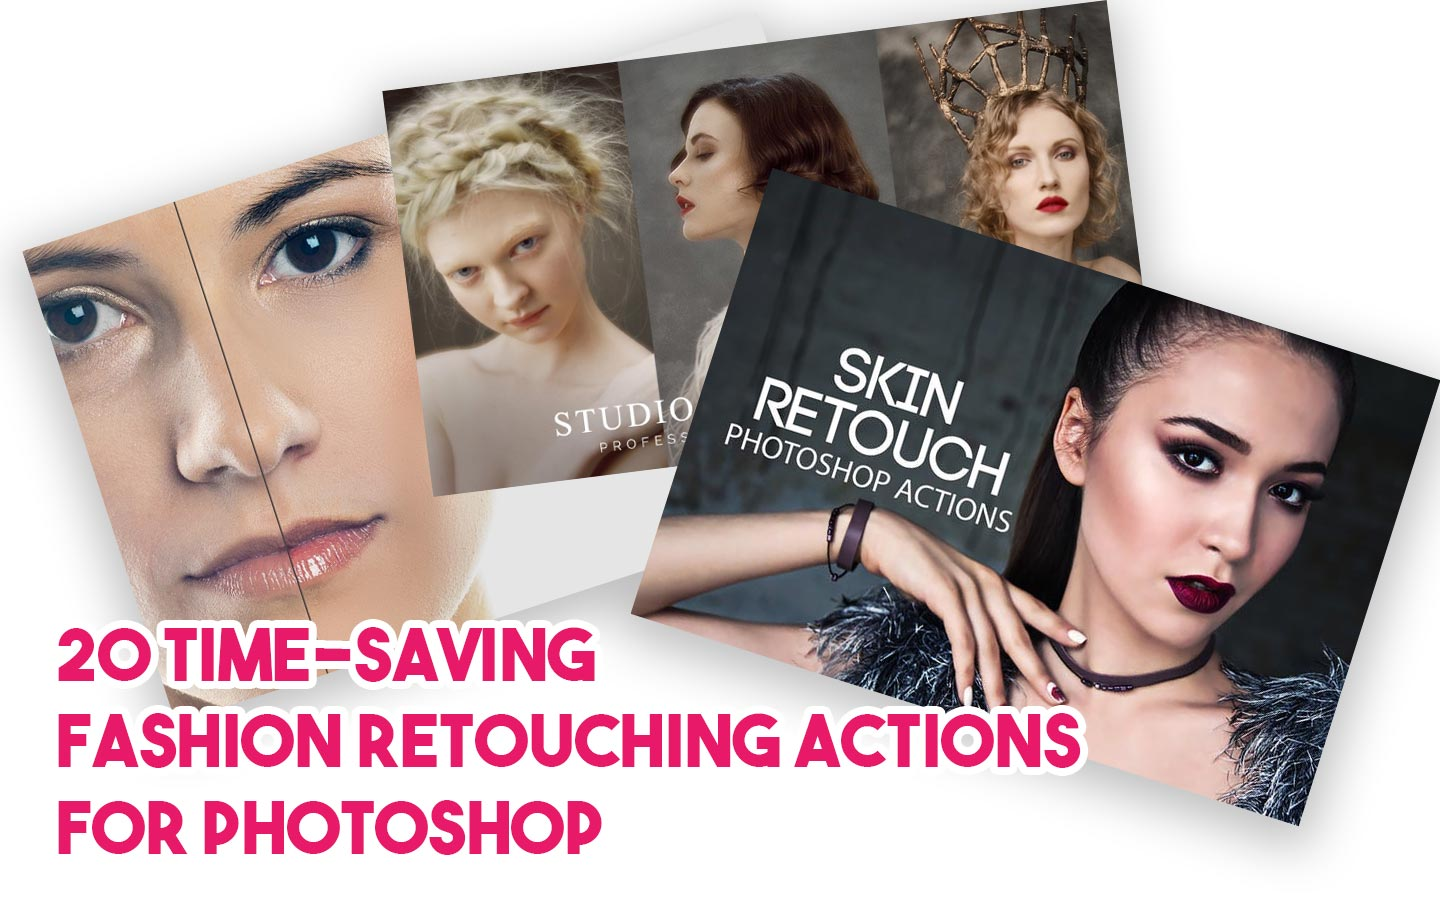 20 time-saving fashion retouching actions for photoshop